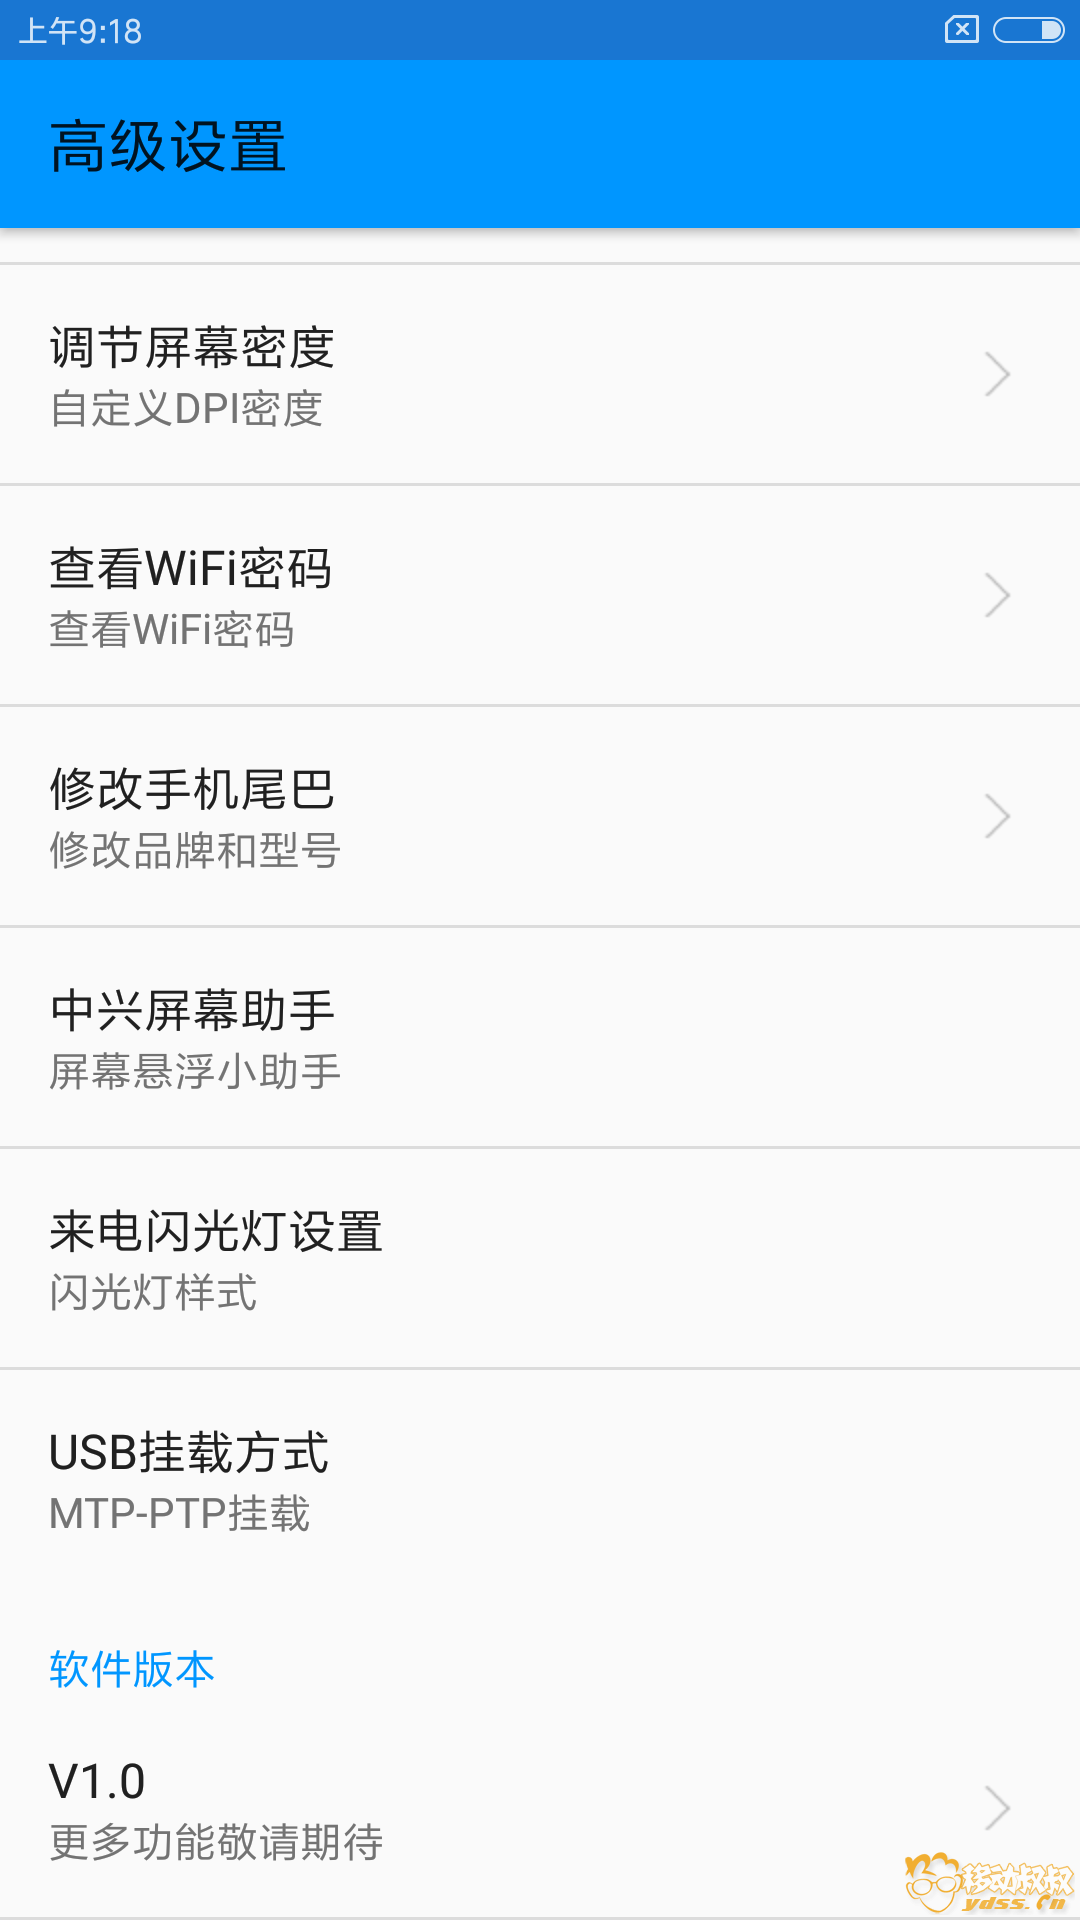 Screenshot_2018-01-13-09-18-13-678_com.zhanhong.tools.png